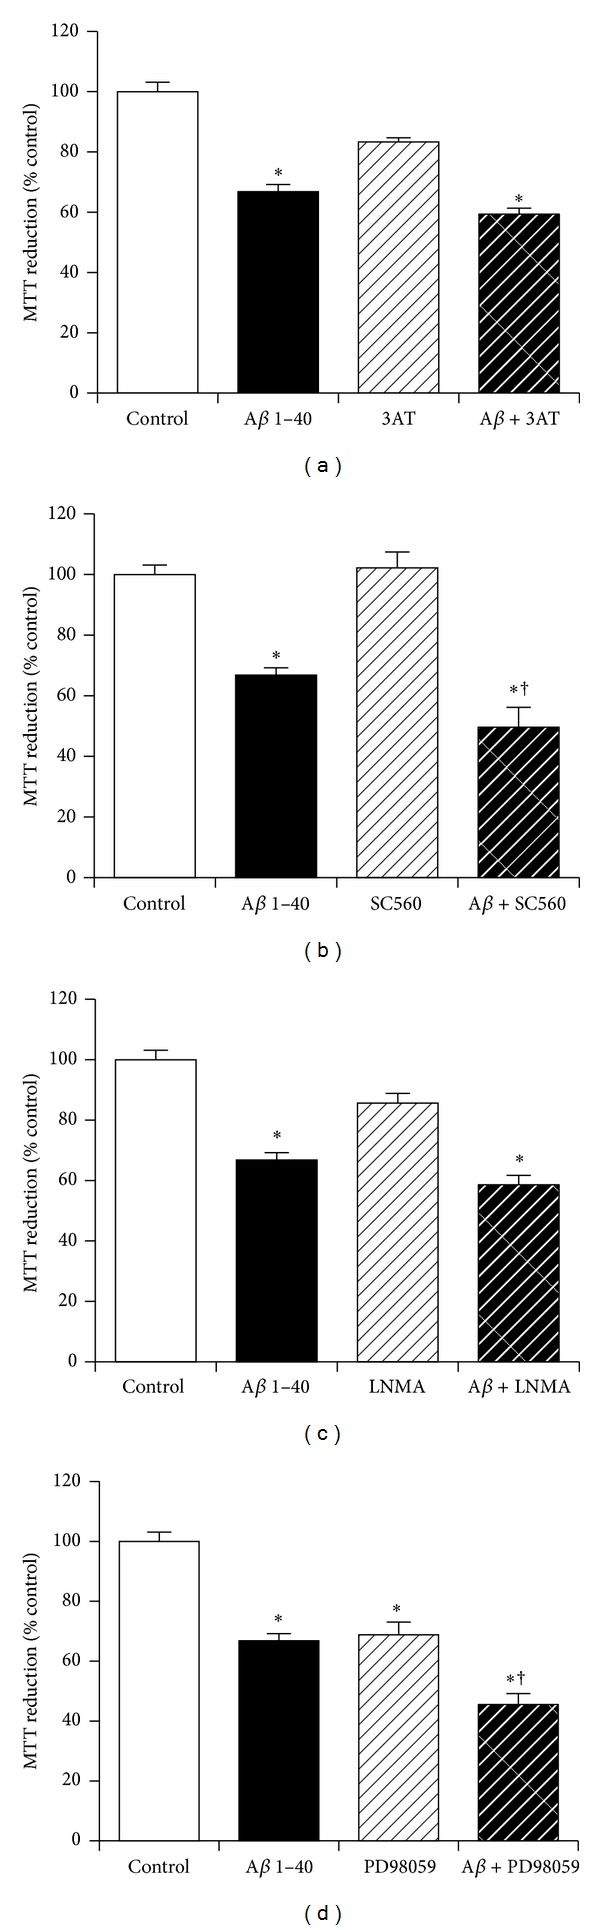 Effect of endogenous enzyme inhibition on KiSS-1 gene overexpression neuroprotection against amyloid- β toxicity. PKiSS cells were pretreated with (a) catalase inhibitor 3-Amino-1,2,4-triazole (3AT: 50 mM), (b) cyclooxygenase inhibitor SC560 (1 μ M), (c) nitric oxide synthase inhibitor N G <t>-Methyl-L-arginine</t> acetate salt (LNMA: 1 mM), (d) mitogen activated protein kinase cascade inhibitor PD98059 (50 μ M) for 2 h prior to exposure to A β 1–40 (10 μ M) and determination of viability by MTT reduction. Results are mean ± s.e.m. * P